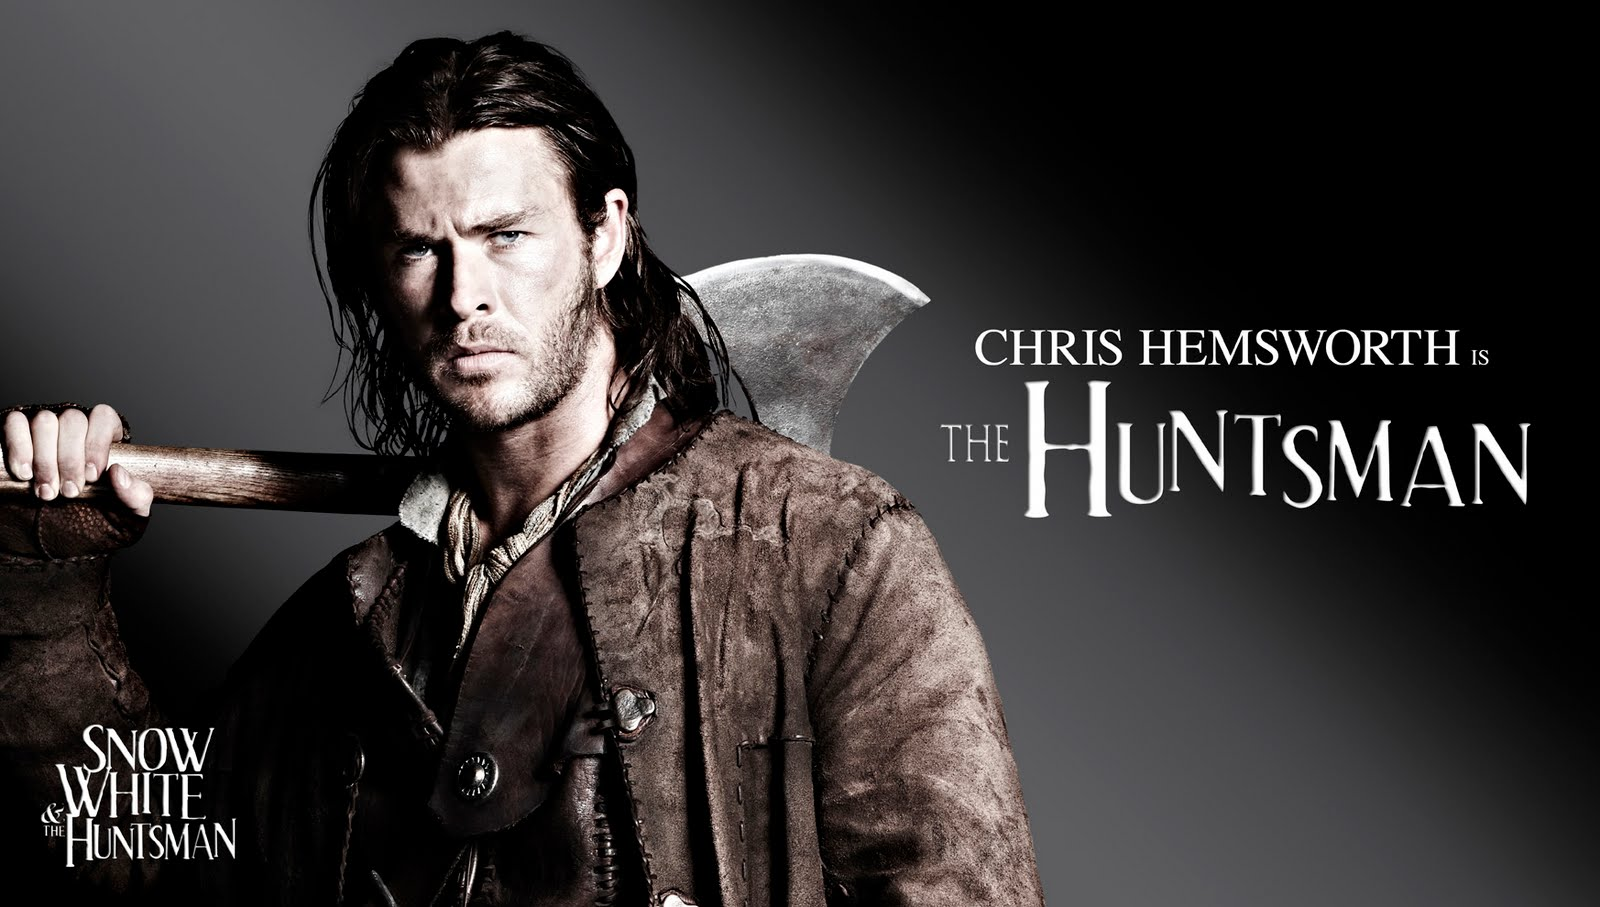 http://3.bp.blogspot.com/-dQHx1g23_4I/Tiuy2Sbww8I/AAAAAAAAAAo/0WbzbfQZsFg/s1600/Chris-Hemsworth-Snow-White-and-the-Huntsman.jpg